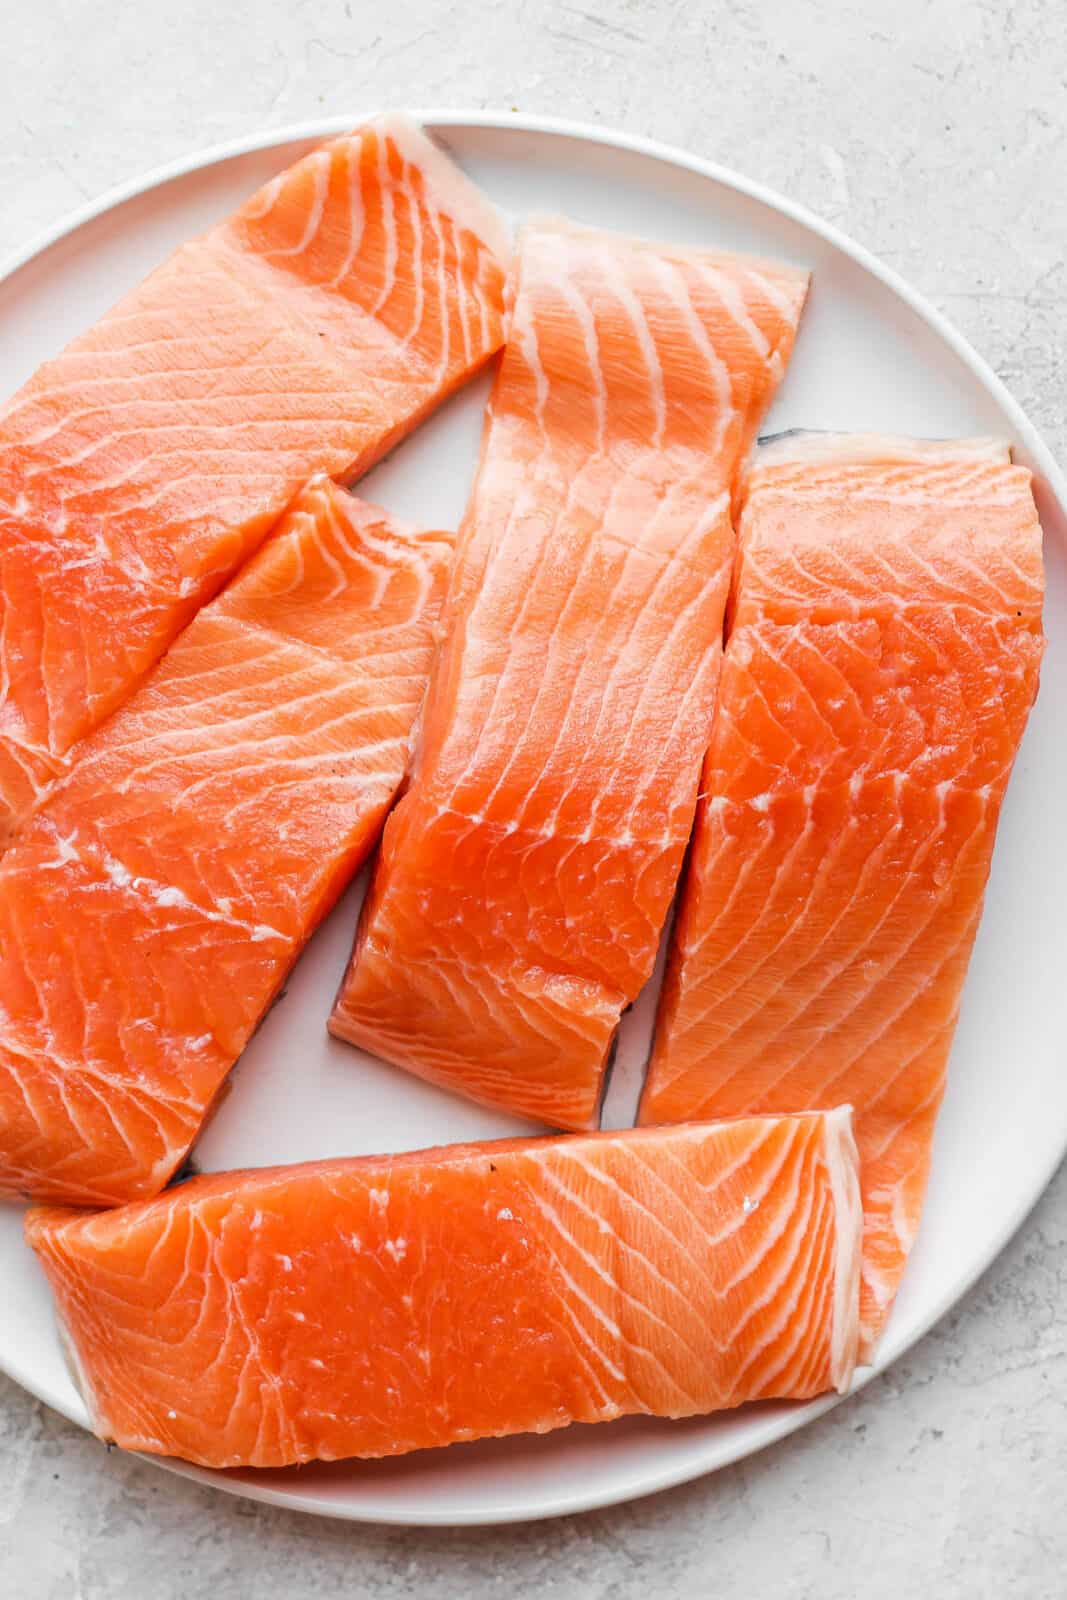 A large plate with raw salmon on it.